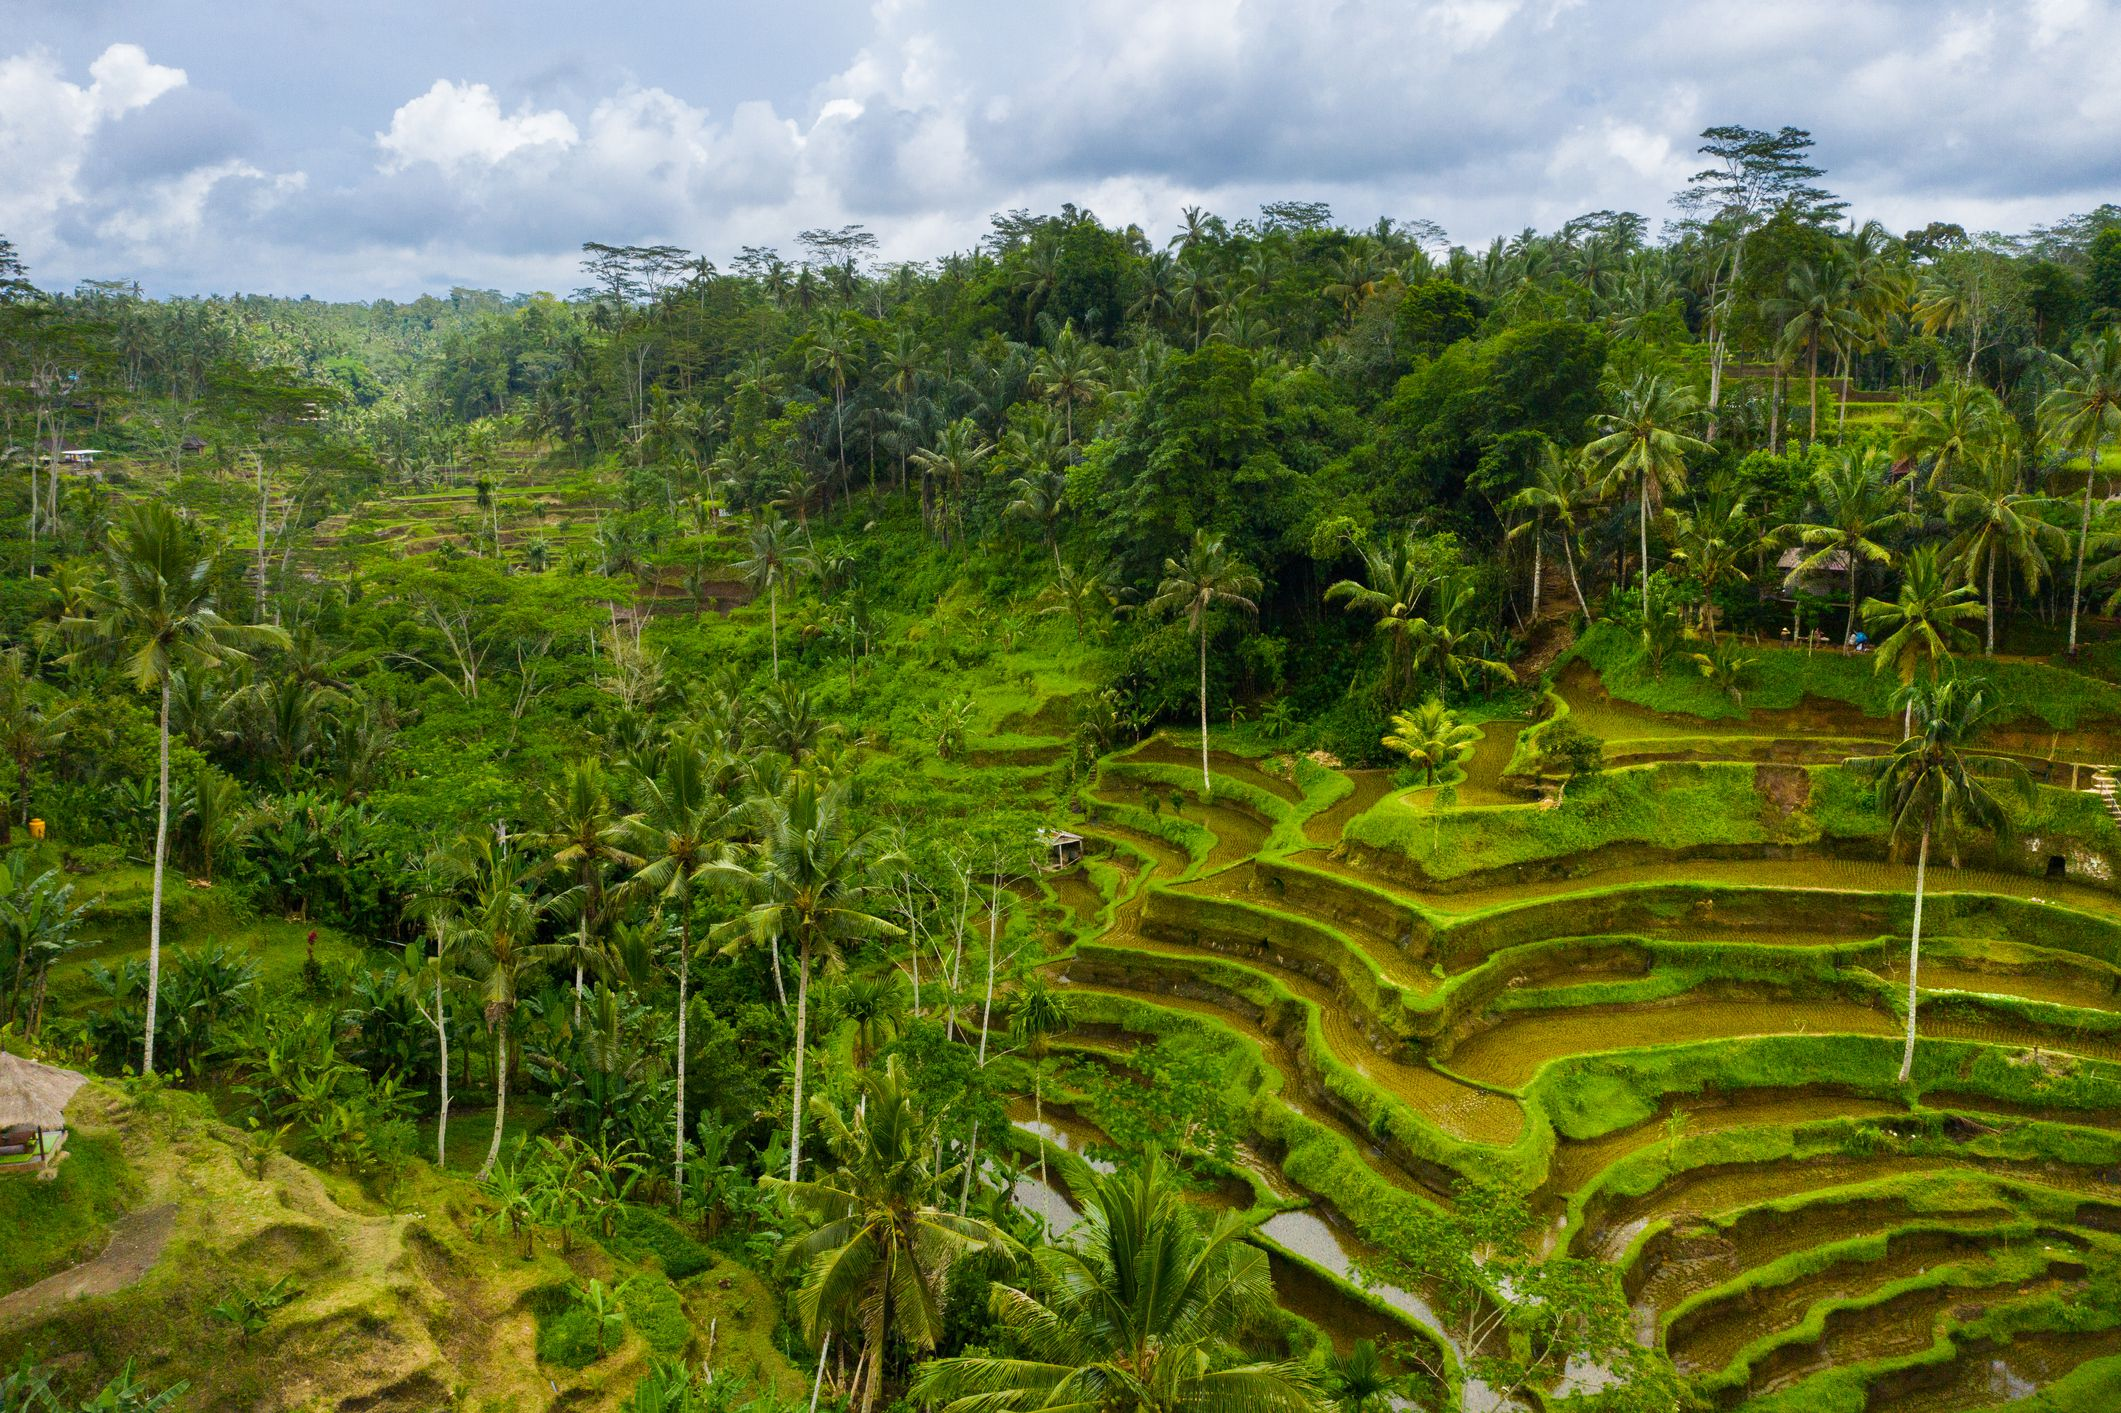 The Top 15 Things to Do in Indonesia